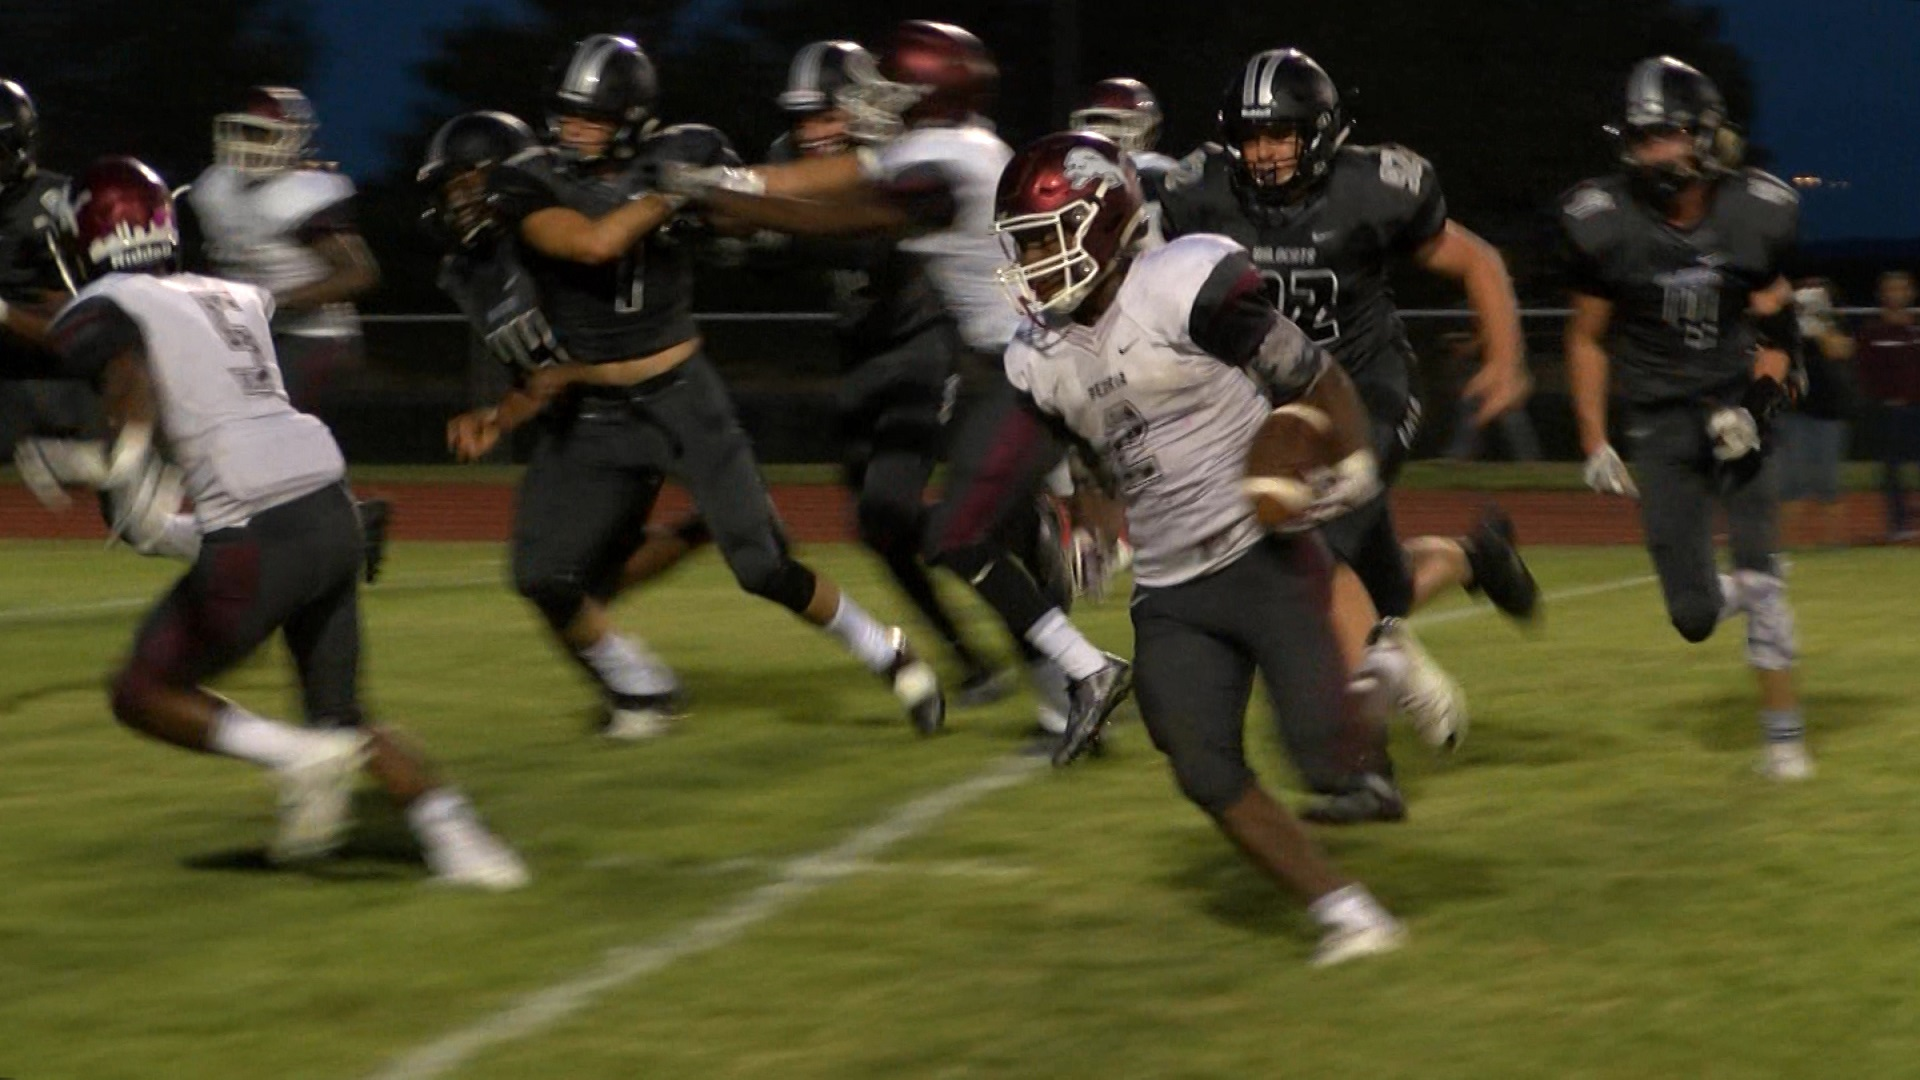 Peoria High RB Geno Hess